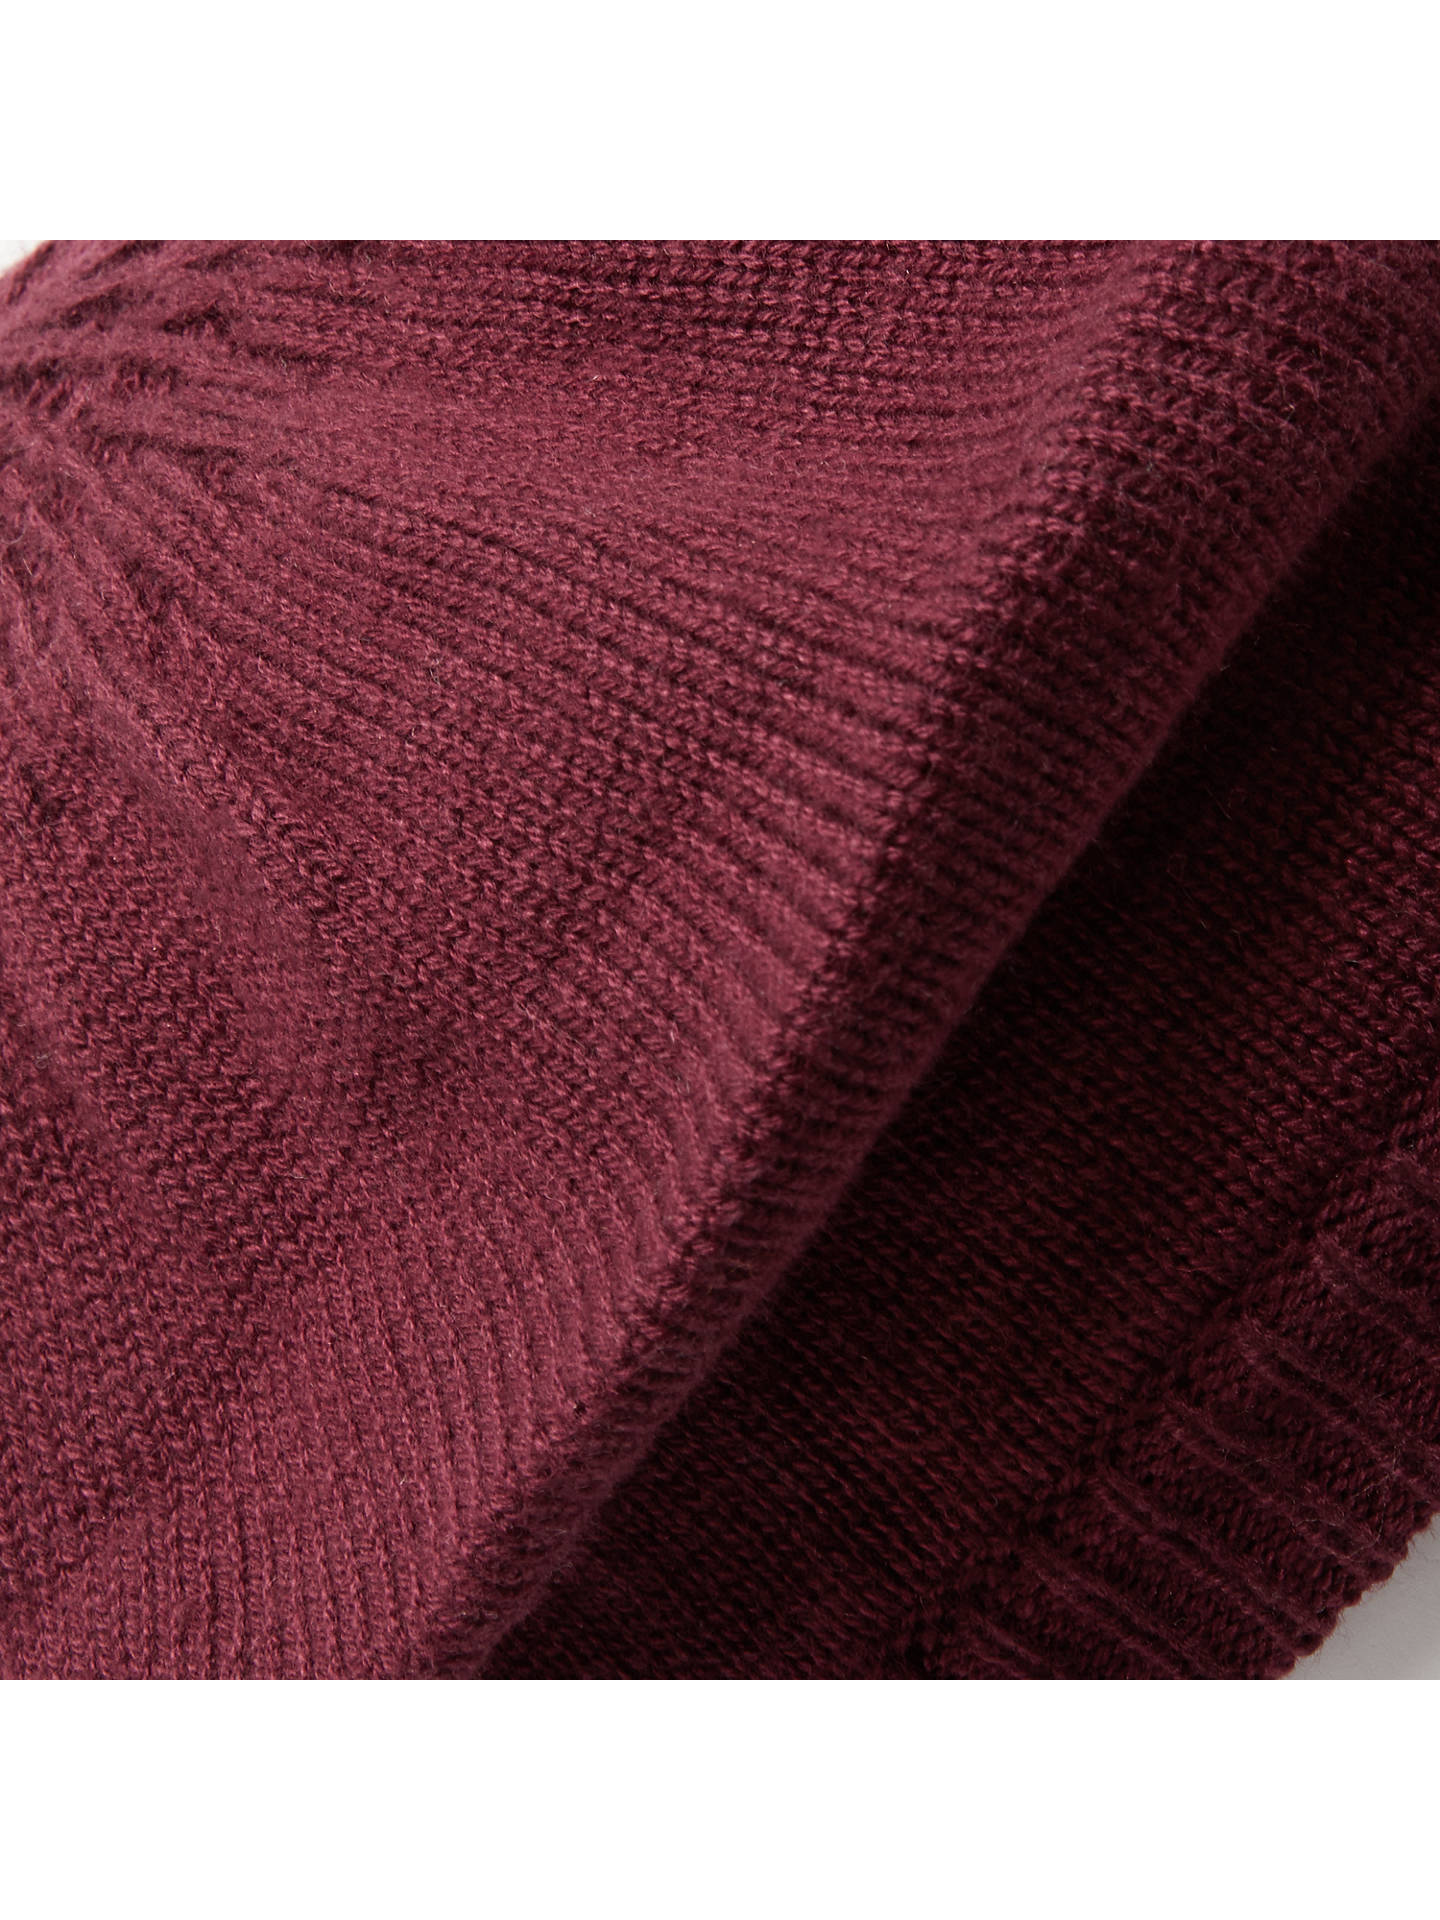 BuyJohn Lewis & Partners Plain Knit Beret, Claret Online at johnlewis.com